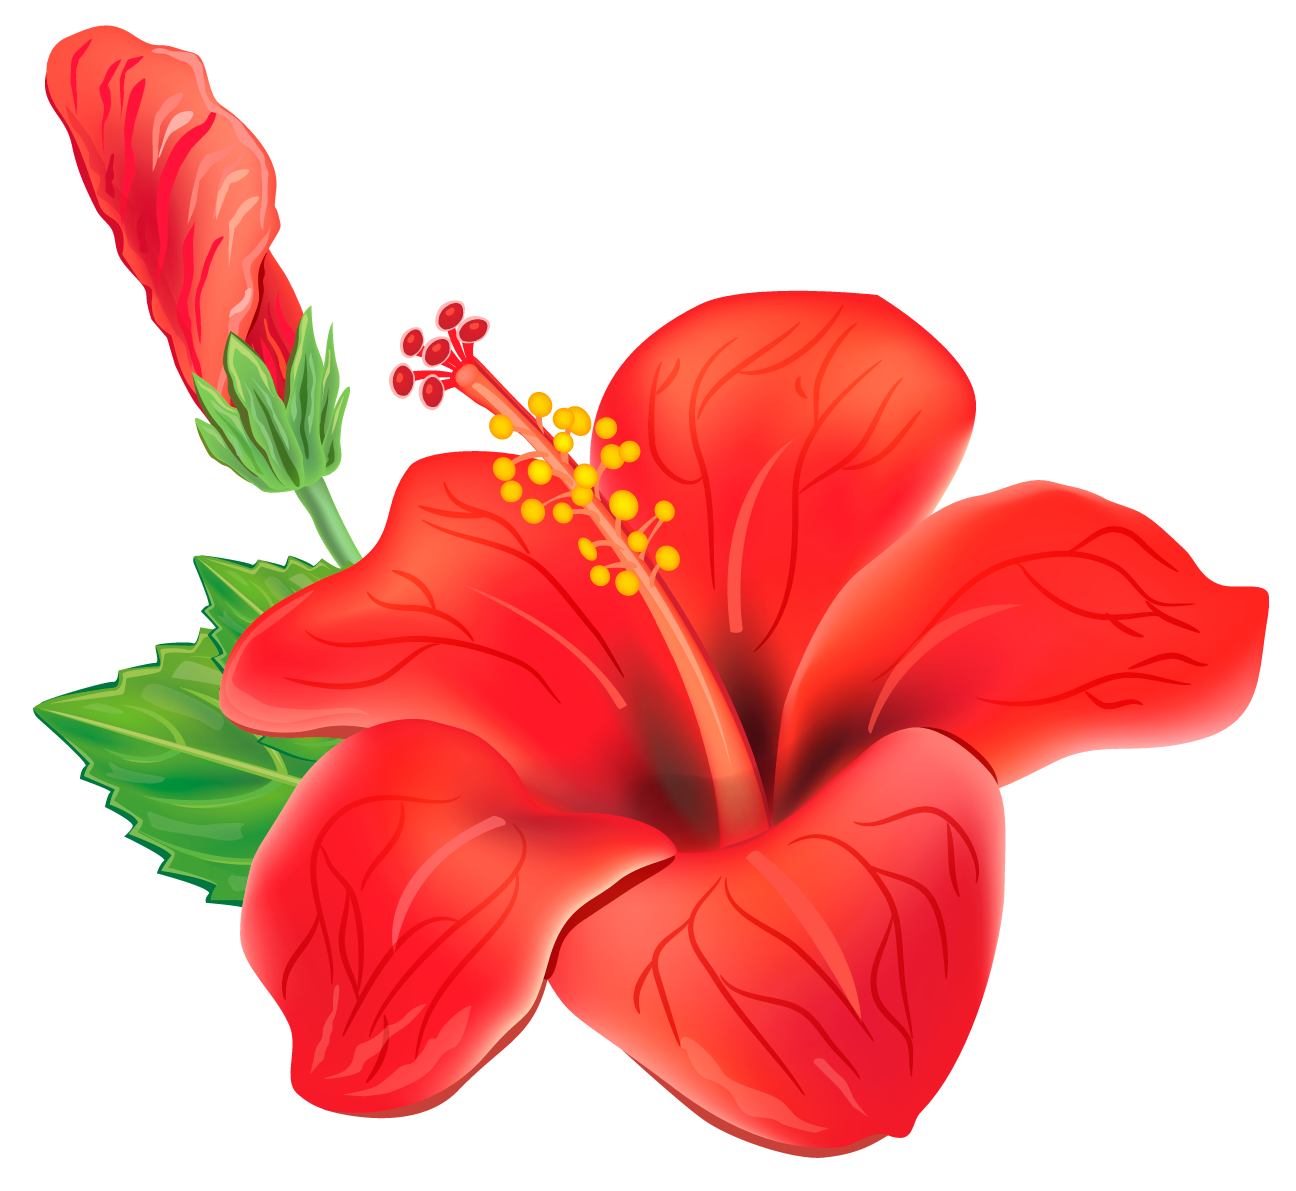 Tropical flowers png. Red exotic flower clipart